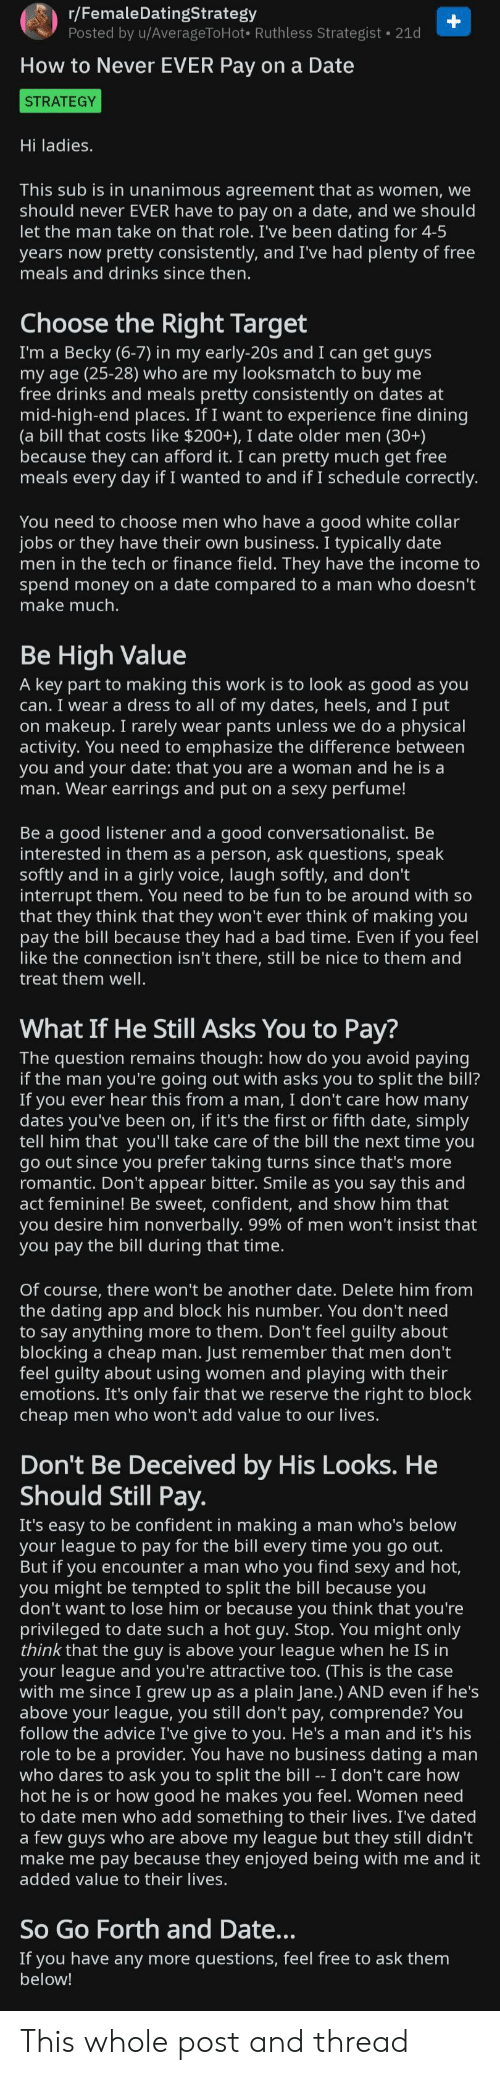 Advice, Bad, and Dating: r/FemaleDatingStrategy  Posted by u/AverageToHot Ruthless Strategist 21d  How to Never EVER Pay on a Date  STRATEGY  Hi ladies.  This sub is in unanimous agreement that as women, we  should never EVER have to pay on a date, and we should  let the man take on that role. I've been dating for 4-5  years now pretty consistently, and I've had plenty of free  meals and drinks since then.  Choose the Right Target  I'm a Becky (6-7) in my early-20s and I can get guys  my age (25-28) who are my looksmatch to buy me  free drinks and meals pretty consistently on dates at  mid-high-end places. If I want to experience fine dining  (a bill that costs like $200+), I date older men (30+)  because they can afford it. I can pretty much get free  meals every day if I wanted to and if I schedule correctly.  You need to choose men who have a good white collar  jobs or they have their own business. I typically date  men in the tech or finance field. They have the income to  spend money on a date compared to a man who doesn't  make much.  Be High Value  A key part to making this work is to look as good as you  can. I wear a dress to all of my dates, heels, and I put  on makeup. I rarely wear pants unless we do a physical  activity. You need to emphasize the difference between  you and your date: that you are a woman and he is a  man. Wear earrings and put on a sexy perfume!  Be a good listener and a good conversationalist. Be  interested in them as a person, ask questions, speak  softly and in a girly voice, laugh softly, and don't  interrupt them. You need to be fun to be around with so  that they think that they won't ever think of making you  pay the bill because they had a bad time. Even if you feel  like the connection isn't there, still be nice to them and  treat them well.  What If He Still Asks You to Pay?  The question remains though: how do you avoid paying  if the man you're going out with asks you to split the bill?  If you ever hear this from a man, I don't care how many  dates you've been on, if it's the first or fifth date, simply  tell him that you'll take care of the bill the next time you  go out since you prefer taking turns since that's more  romantic. Don't appear bitter. Smile as you say this and  act feminine! Be sweet, confident, and show him that  you desire him nonverbally. 99% of men won't insist that  you pay the bill during that time.  Of course, there won't be another date. Delete him from  the dating app and block his number. You don't need  to say anything more to them. Don't feel guilty about  blocking a cheap man. Just remember that men don't  feel guilty about using women and playing with their  emotions. It's only fair that we reserve the right to block  cheap men who won't add value to our lives.  Don't Be Deceived by His Looks. He  Should Still Pay  It's easy to be confident in making a man who's below  your league to pay for the bill every time you go out  But if you encounter a man who you find sexy and hot,  you might be tempted to split the bill because you  don't want to lose him or because you think that you're  privileged to date such a hot guy. Stop. You might only  think that the guy is above your league when he IS in  your league and you're attractive too. (This is the case  with me since I grew up as a plain Jane.) AND even if he's  above your league, you still don't pay, comprende? You  follow the advice I've give to you. He's a man and it's his  role to be a provider. You have no business dating a man  who dares to ask you to split the bill -- I don't care how  hot he is or how good he makes you feel. Women need  to date men who add something to their lives. I've dated  a few guys who are above my league but they still didn't  make me pay because they enjoyed being with me and it  added value to their lives.  So Go Forth and Date...  If you have any more questions, feel free to ask them  below! This whole post and thread